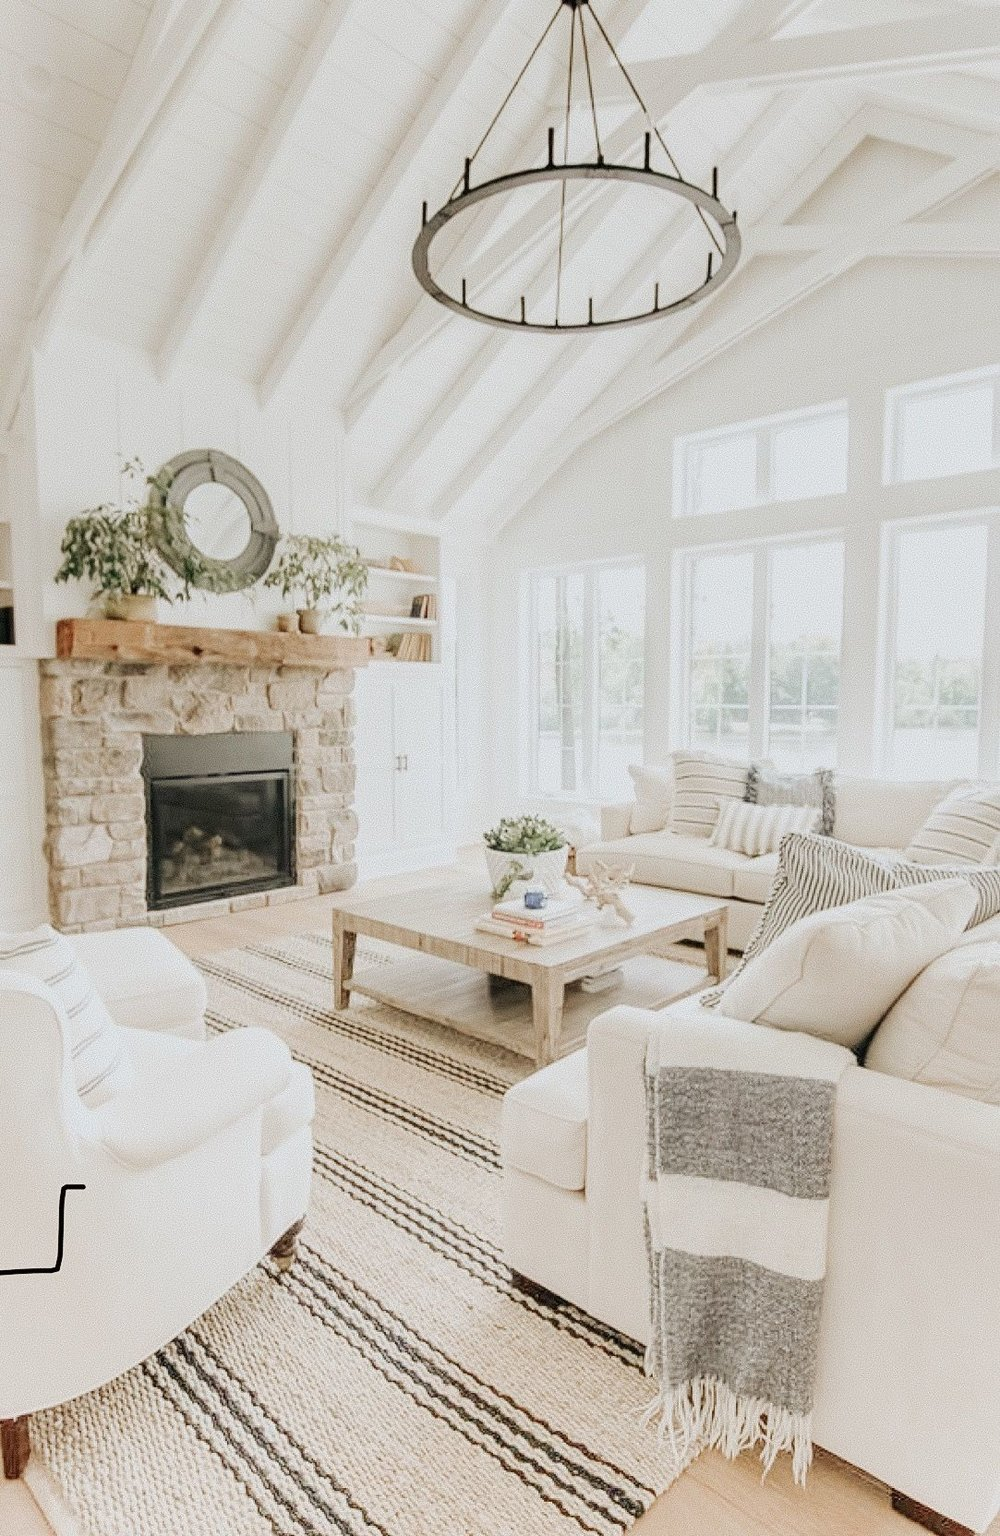 You will find these simple ideas on How to Prepare Your Home for the Spring Selling Season very helpful and of course they can be applied for selling all year round!